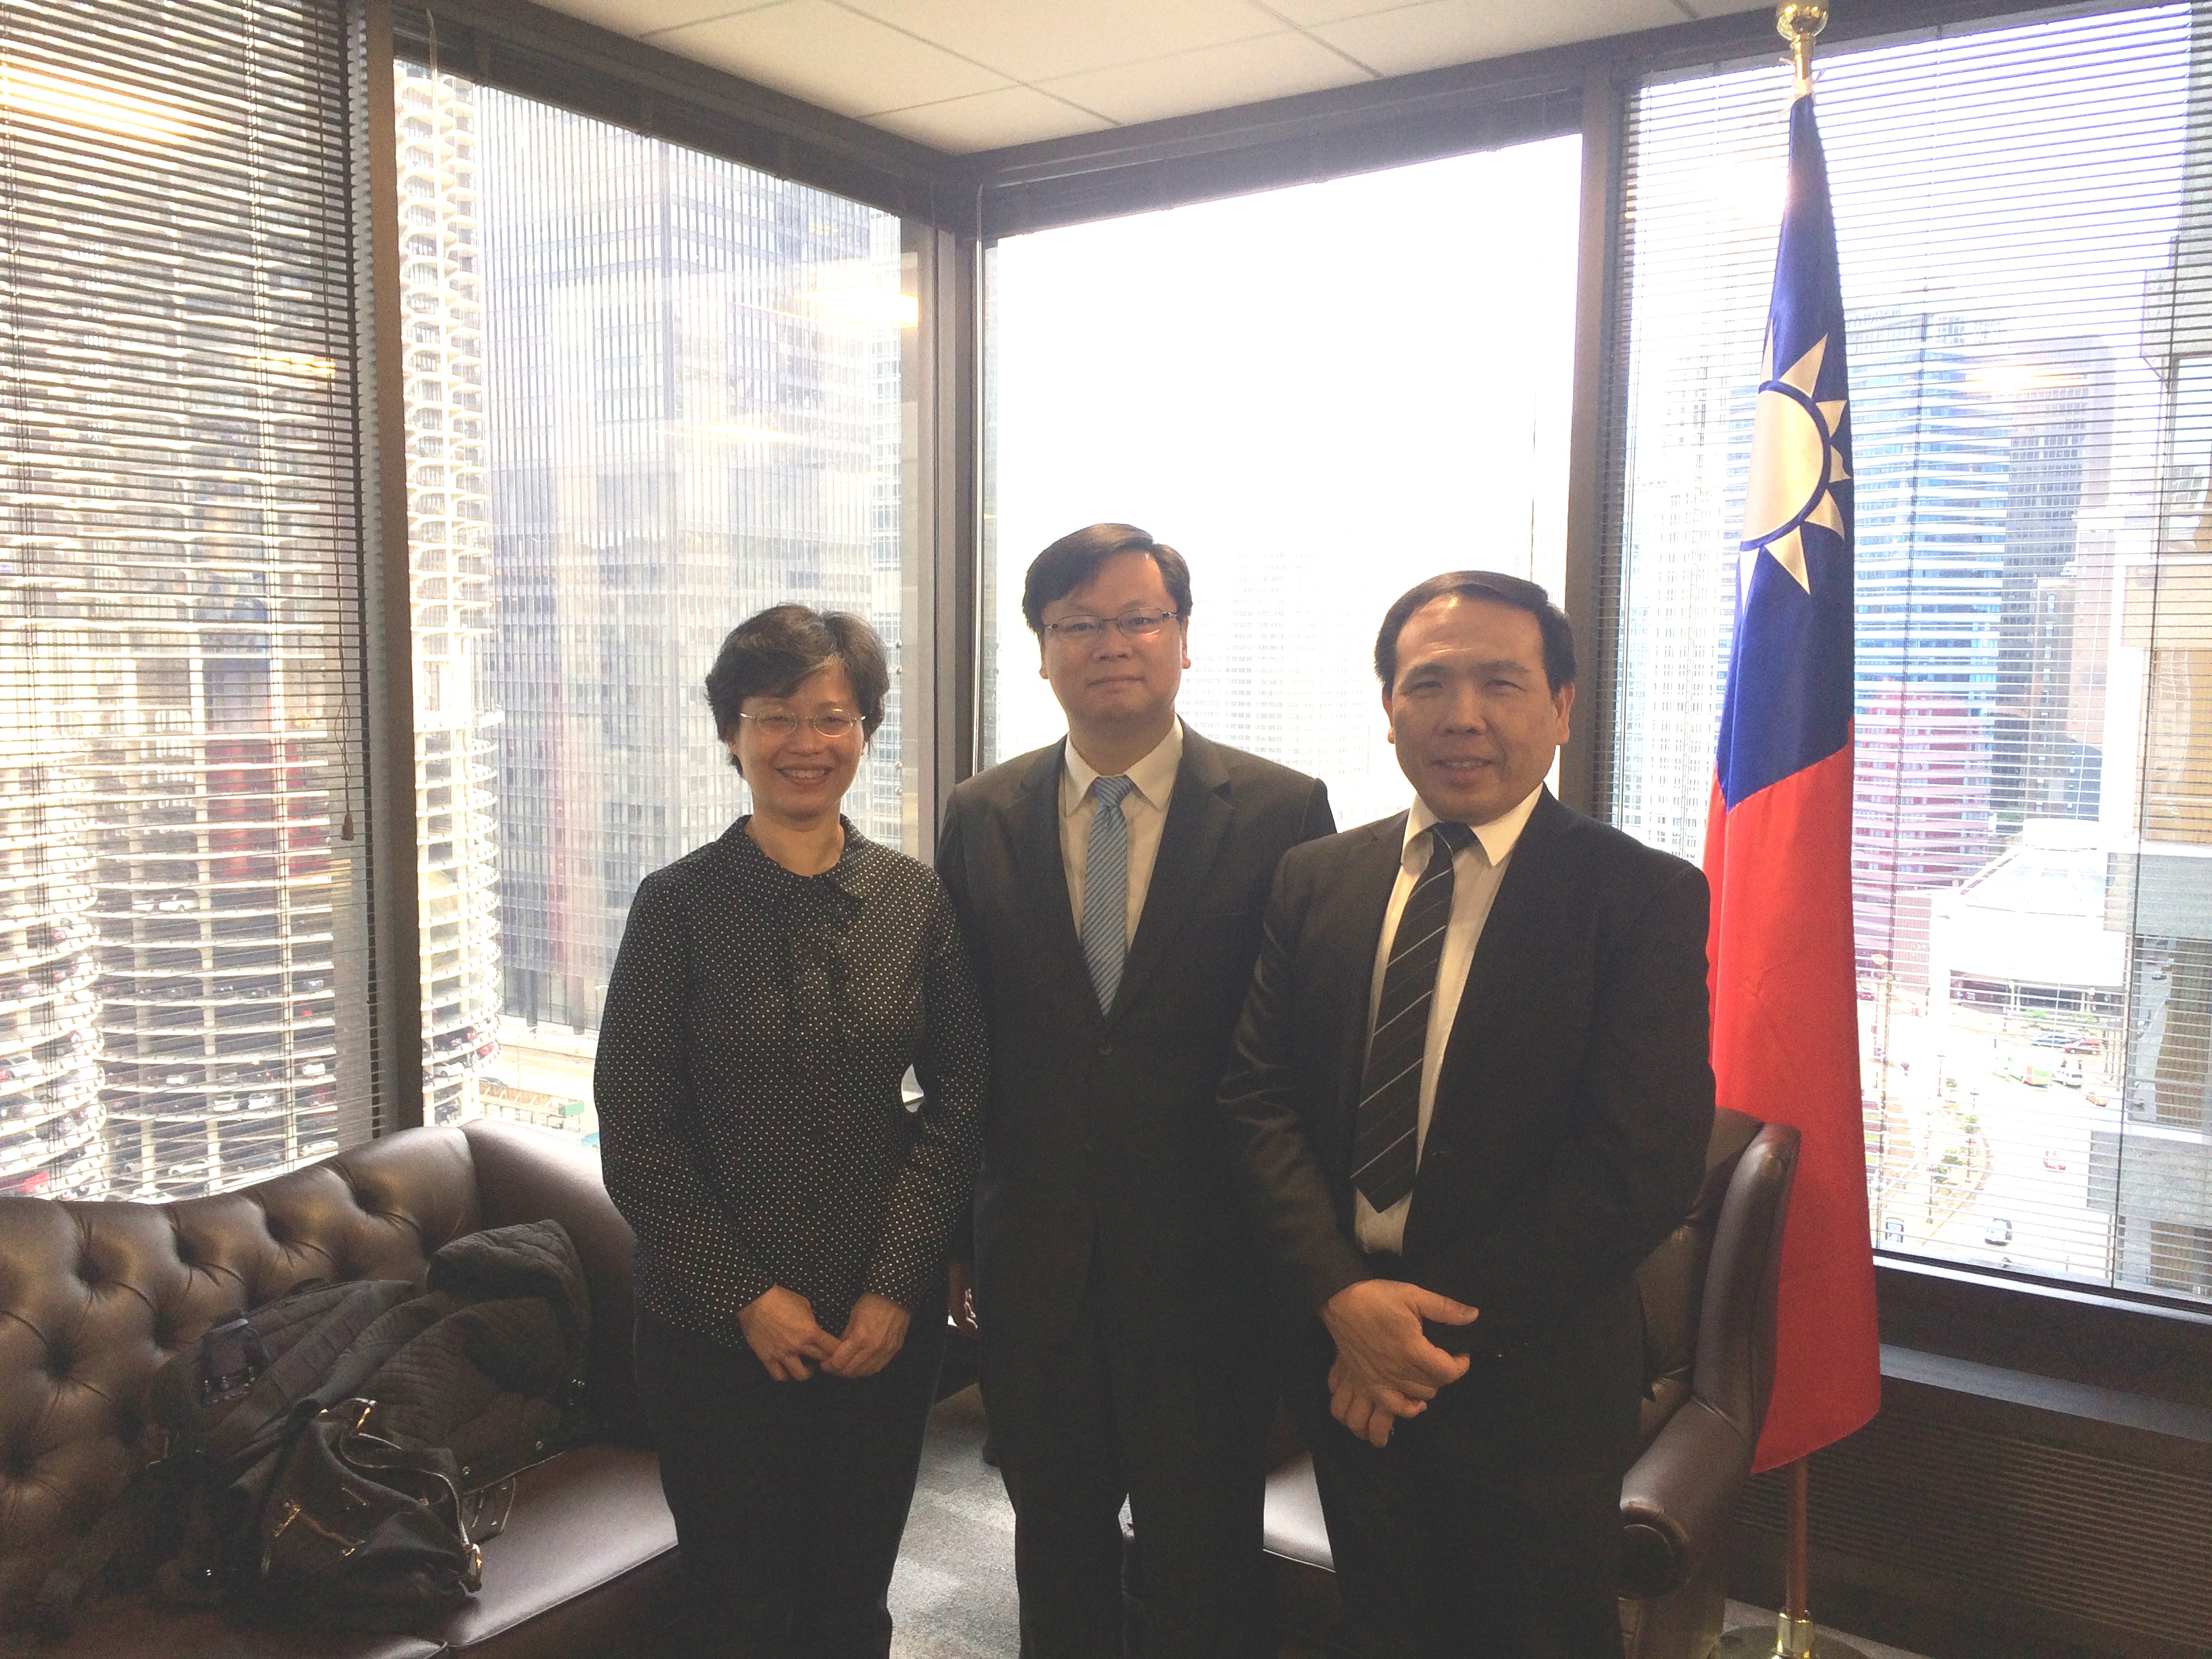 Prof. Wang Ya-Hui from National Taipei University of Education visited TECO in Chicago